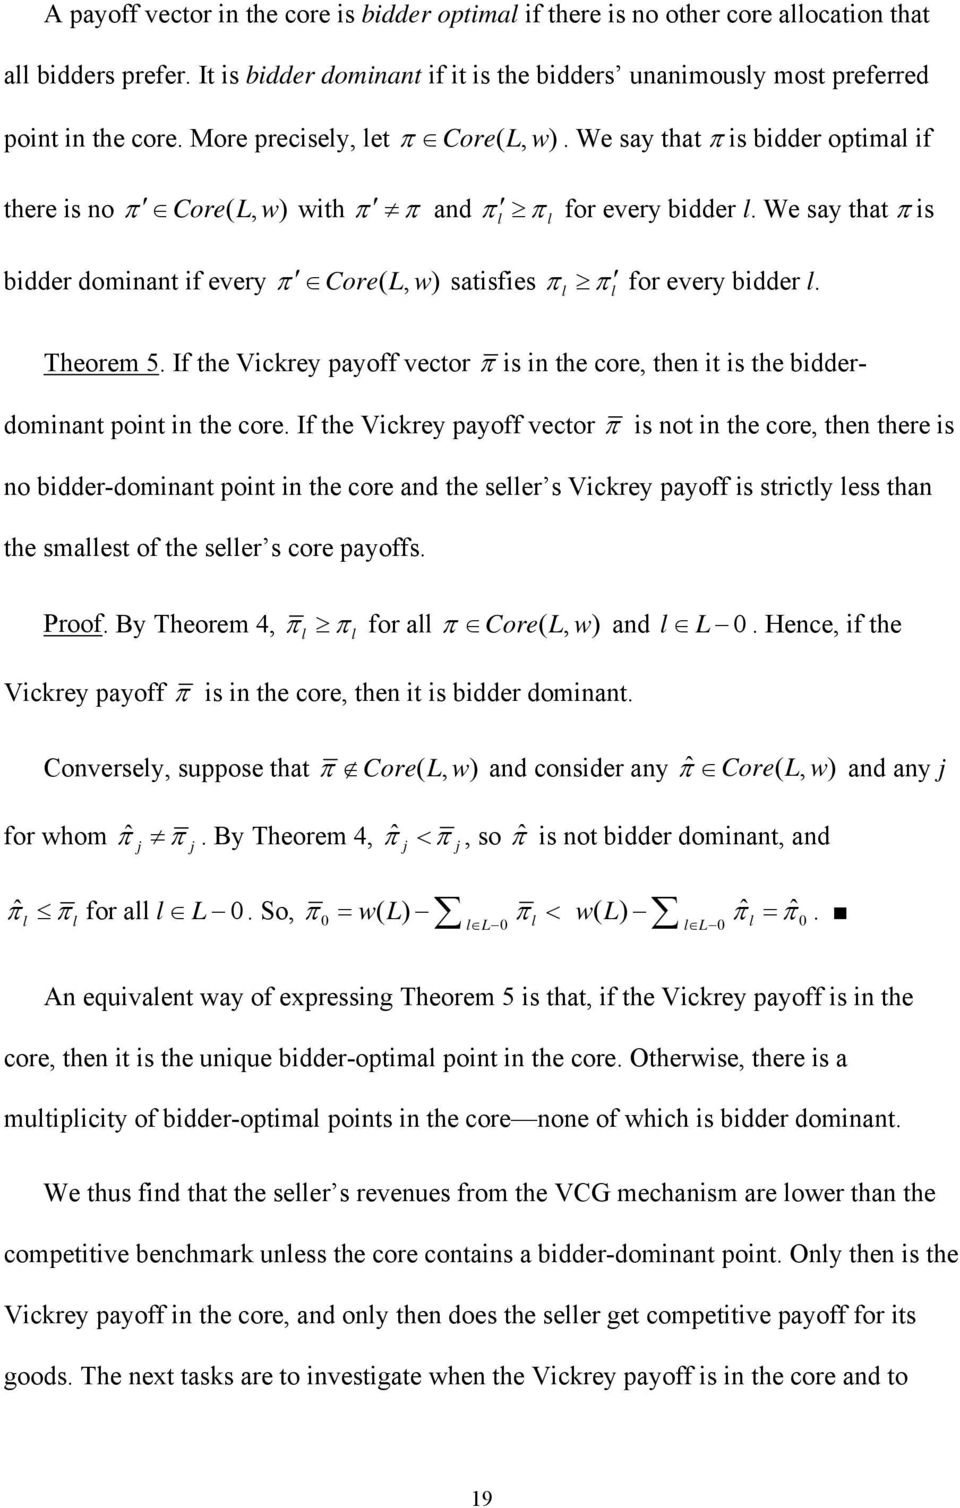 We say that π is bidder doinant if every π Core( L, w) satisfies π π for every bidder. Theore 5. If the Vickrey payoff vector π is in the core, then it is the bidderdoinant point in the core.